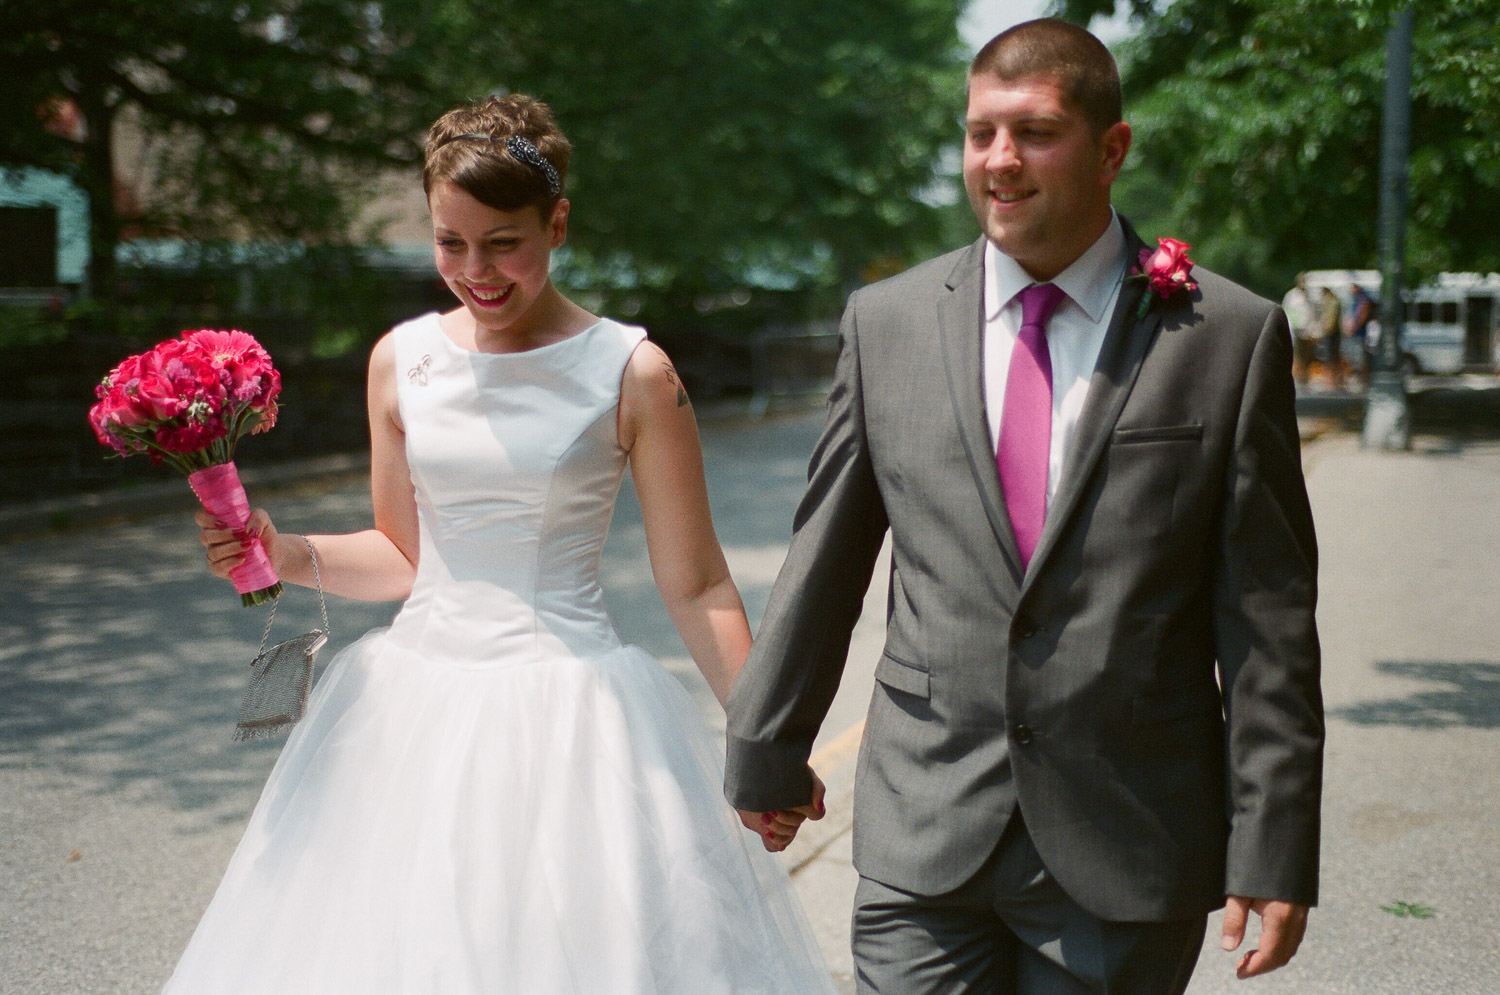 nyc central park mini wedding couple photo by wendy g photography